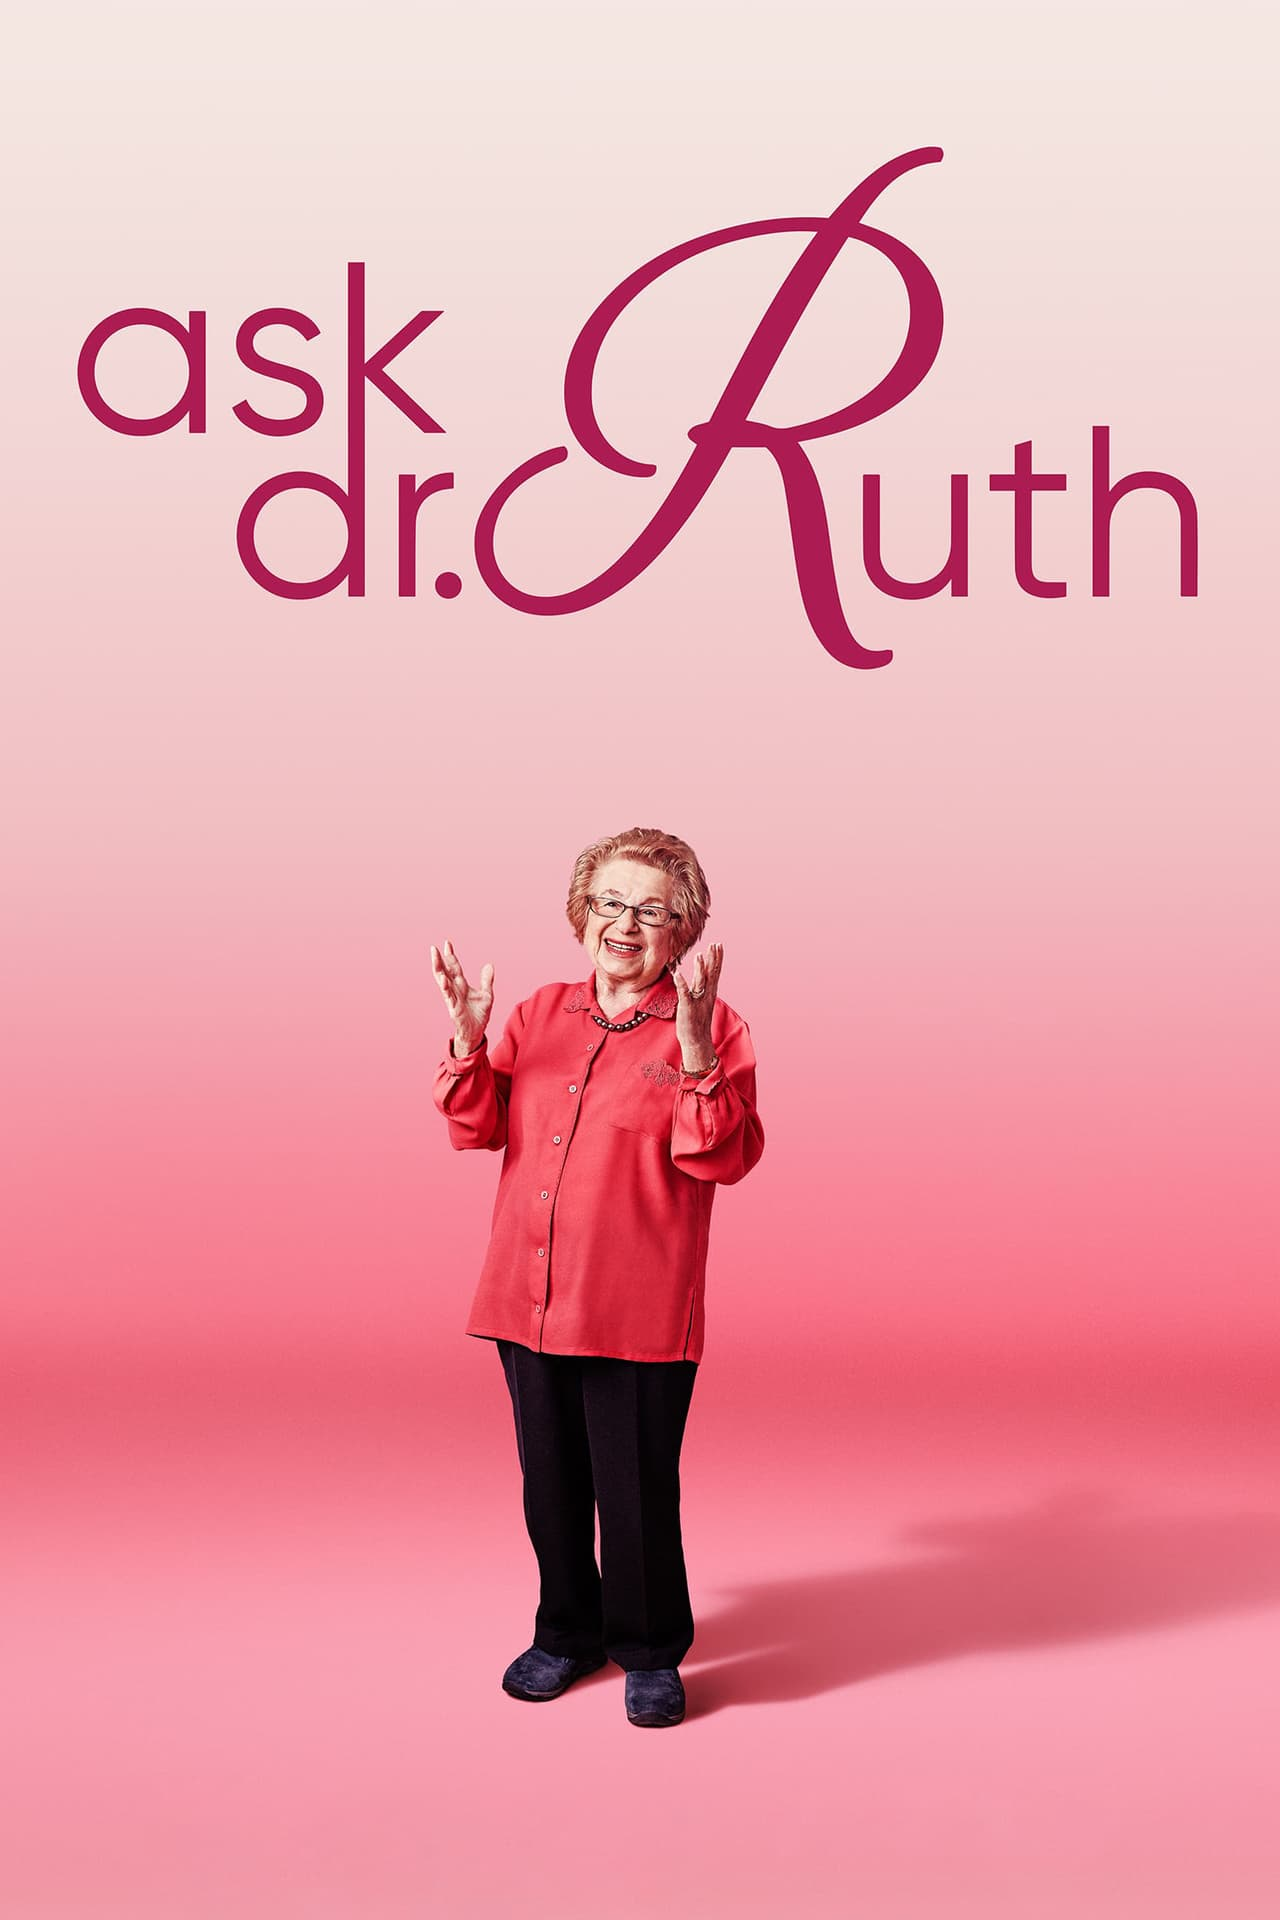 Poster for Ask Dr. Ruth